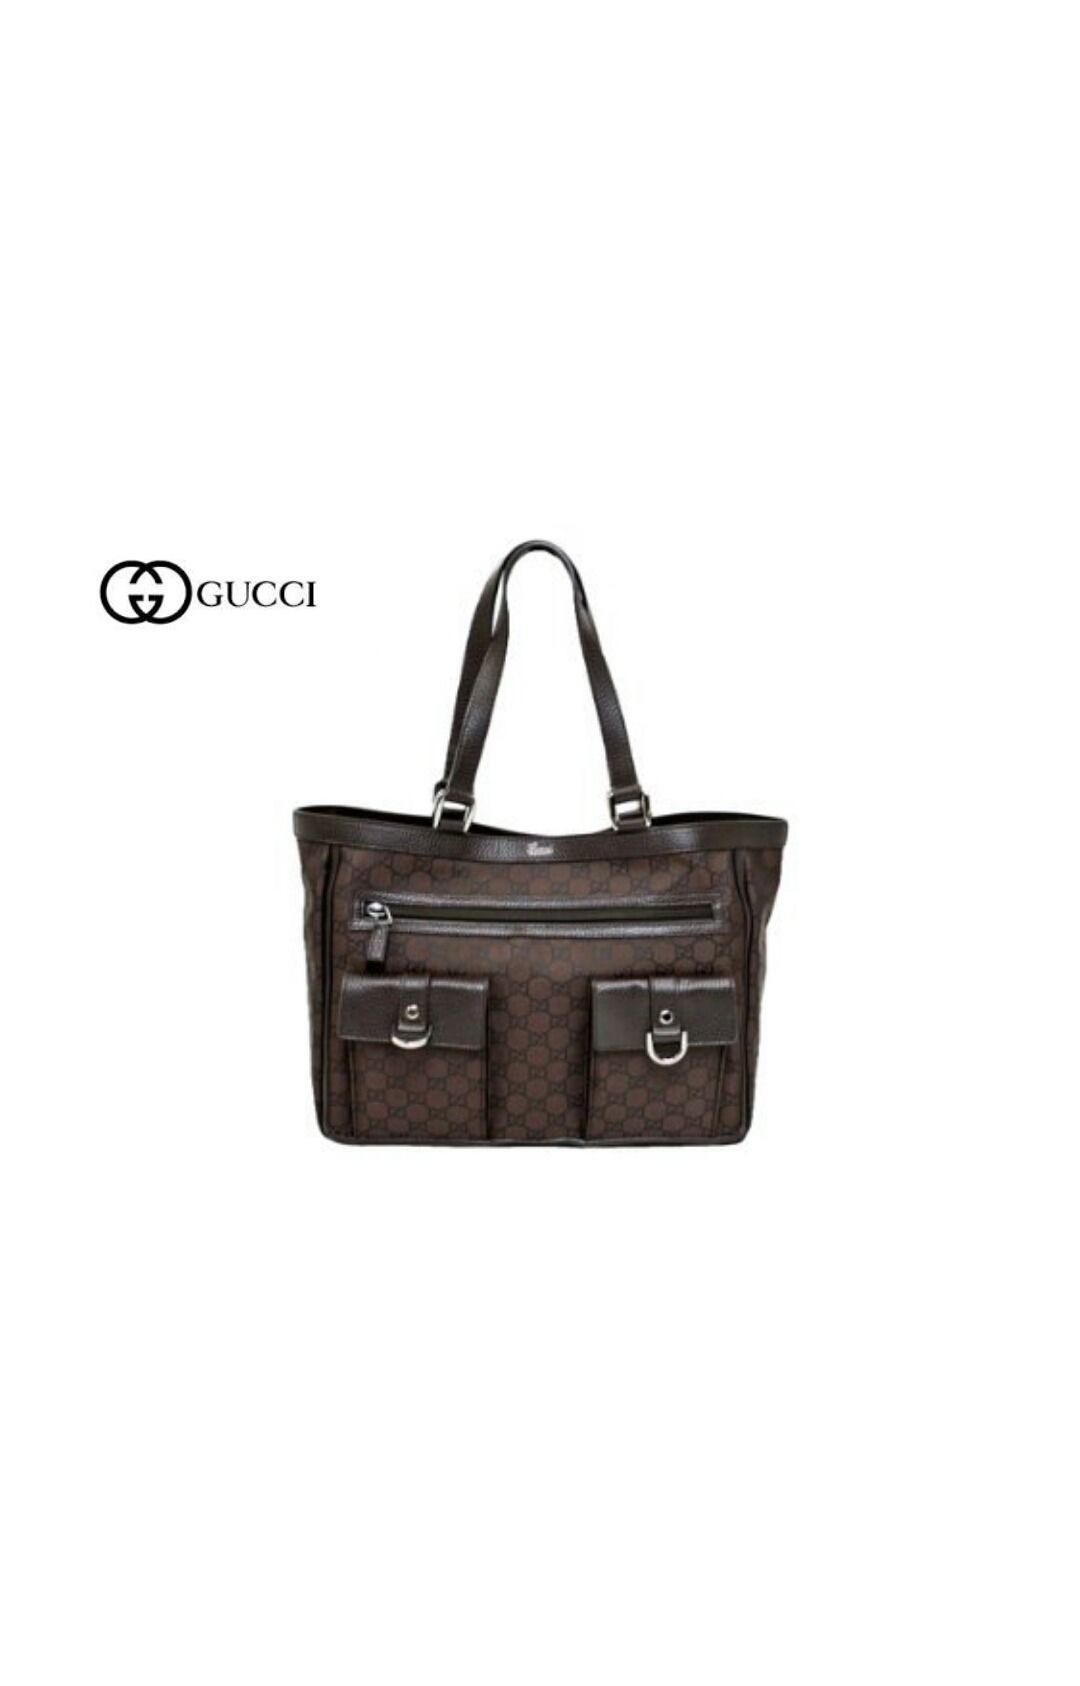 GUCCI ナイロントートバッグ